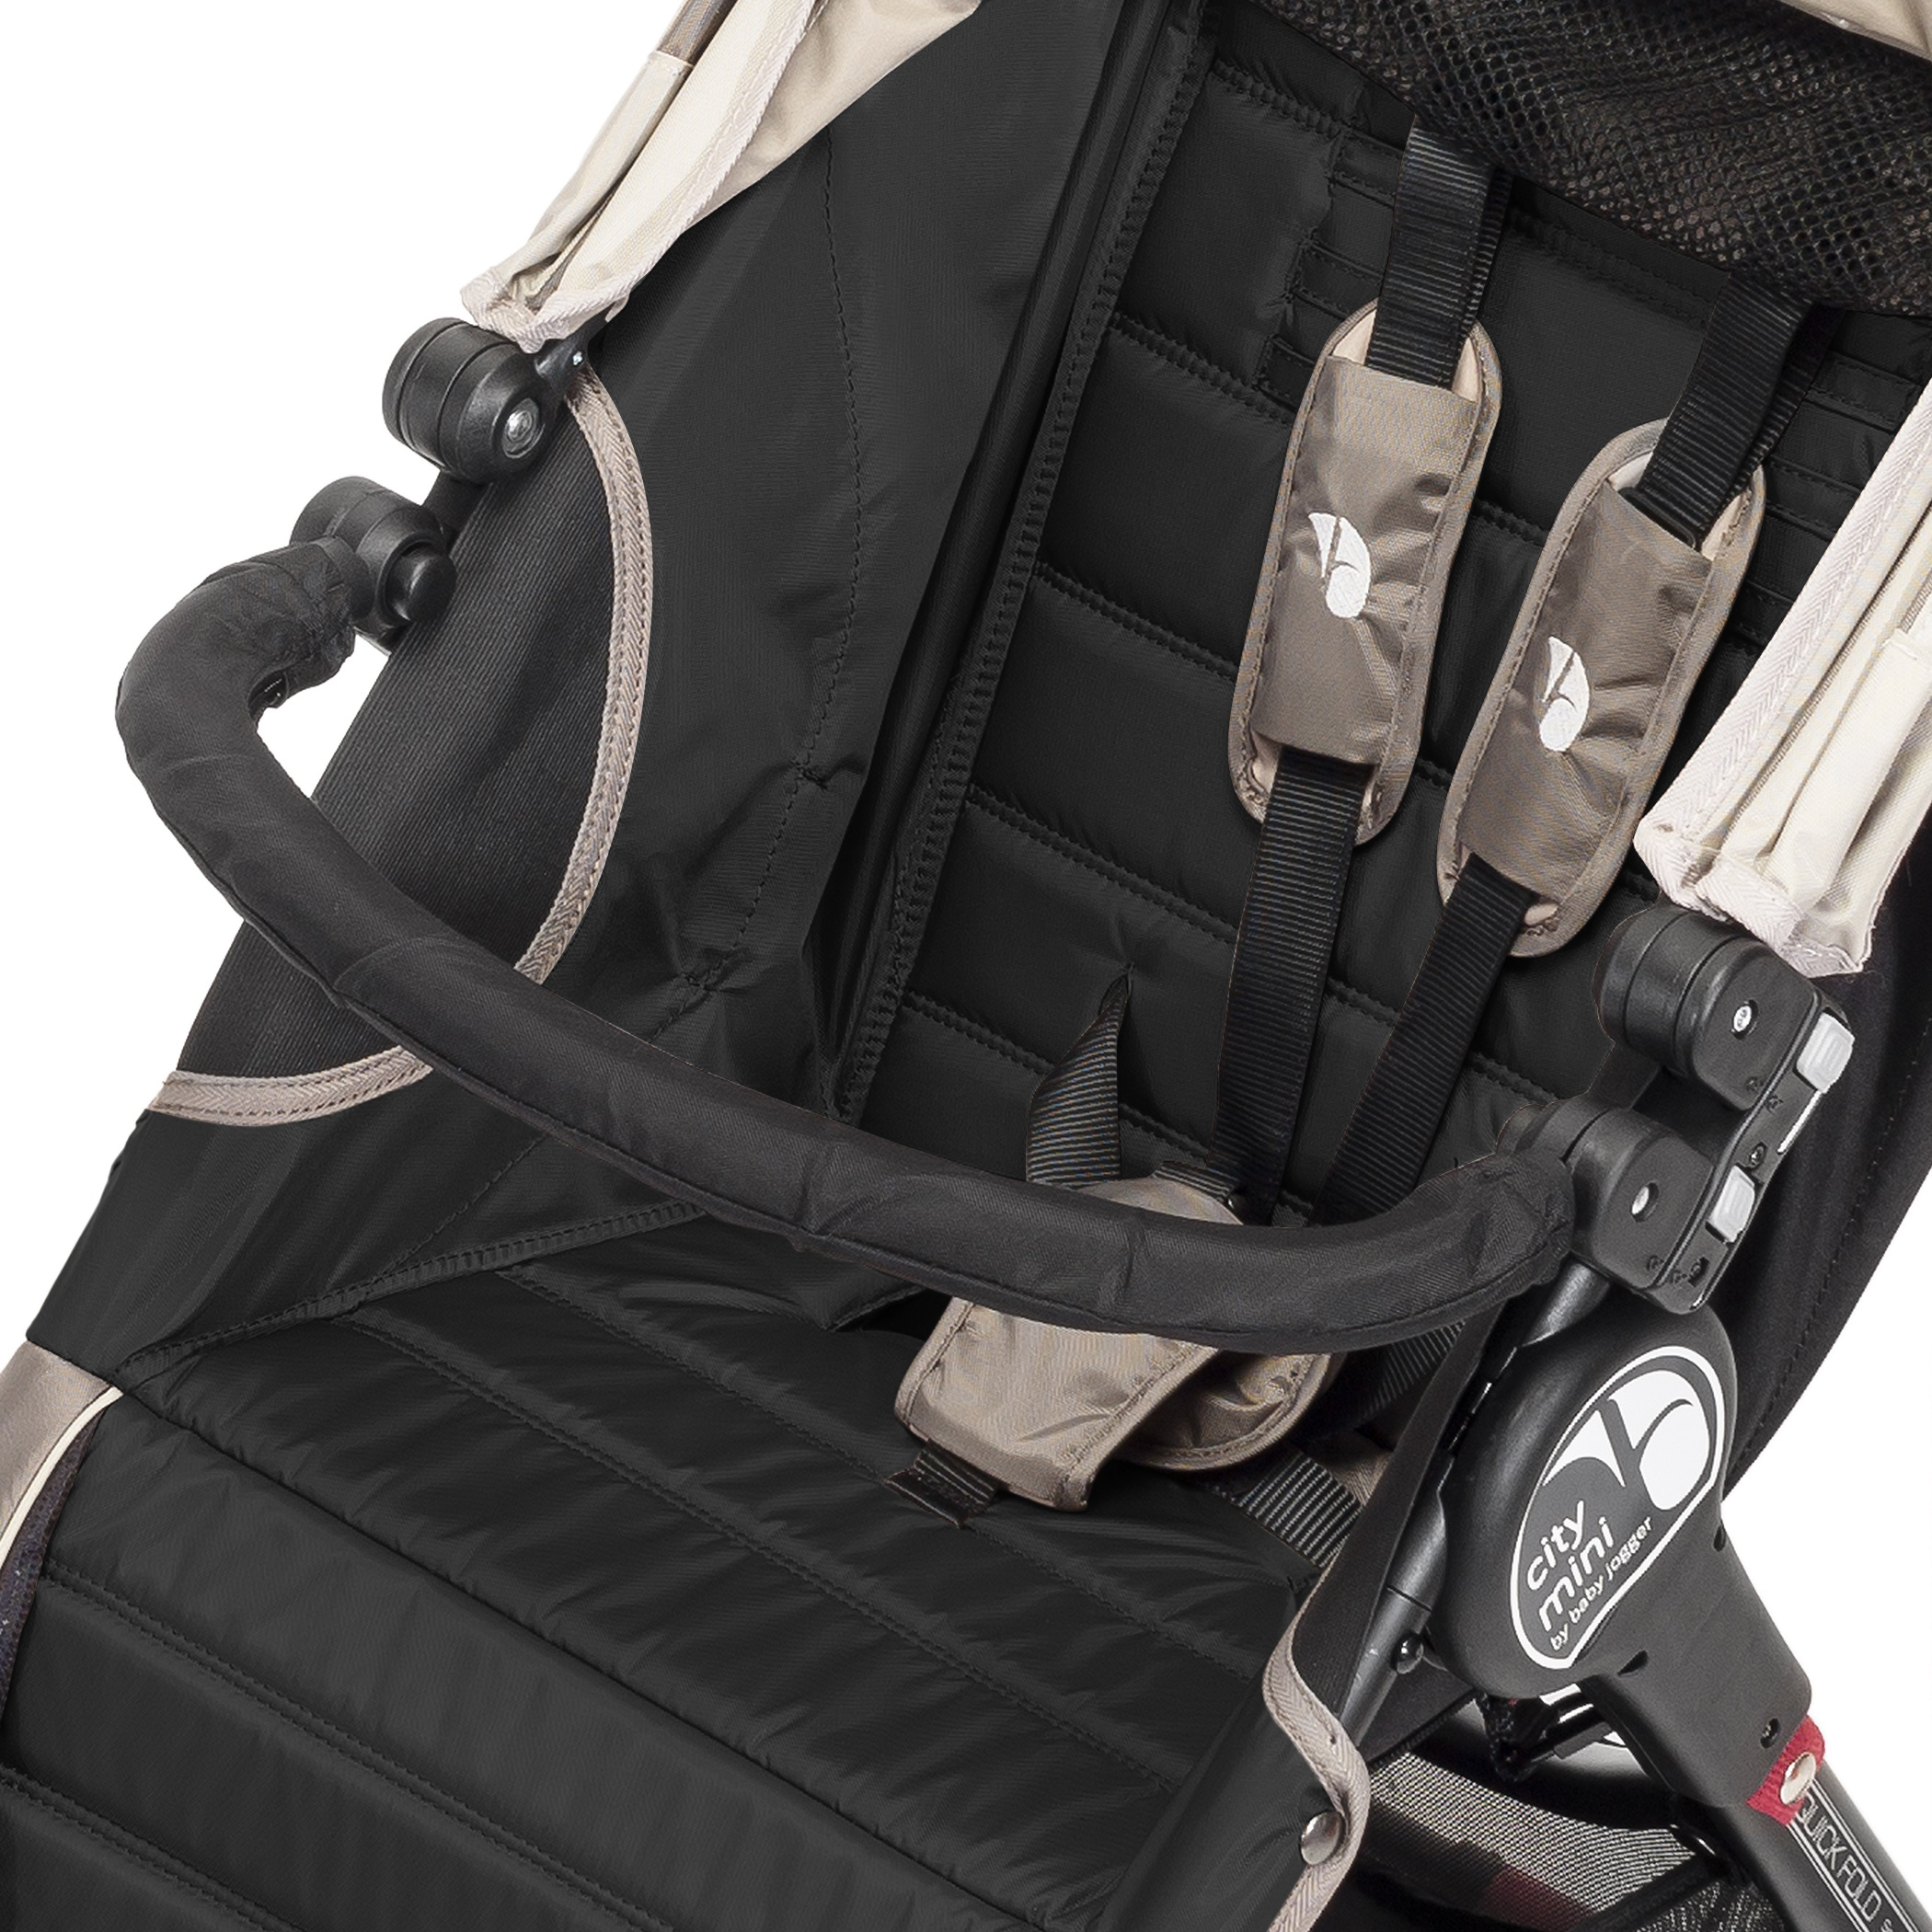 Baby Jogger Summit X3 Travel System Package Black Baby